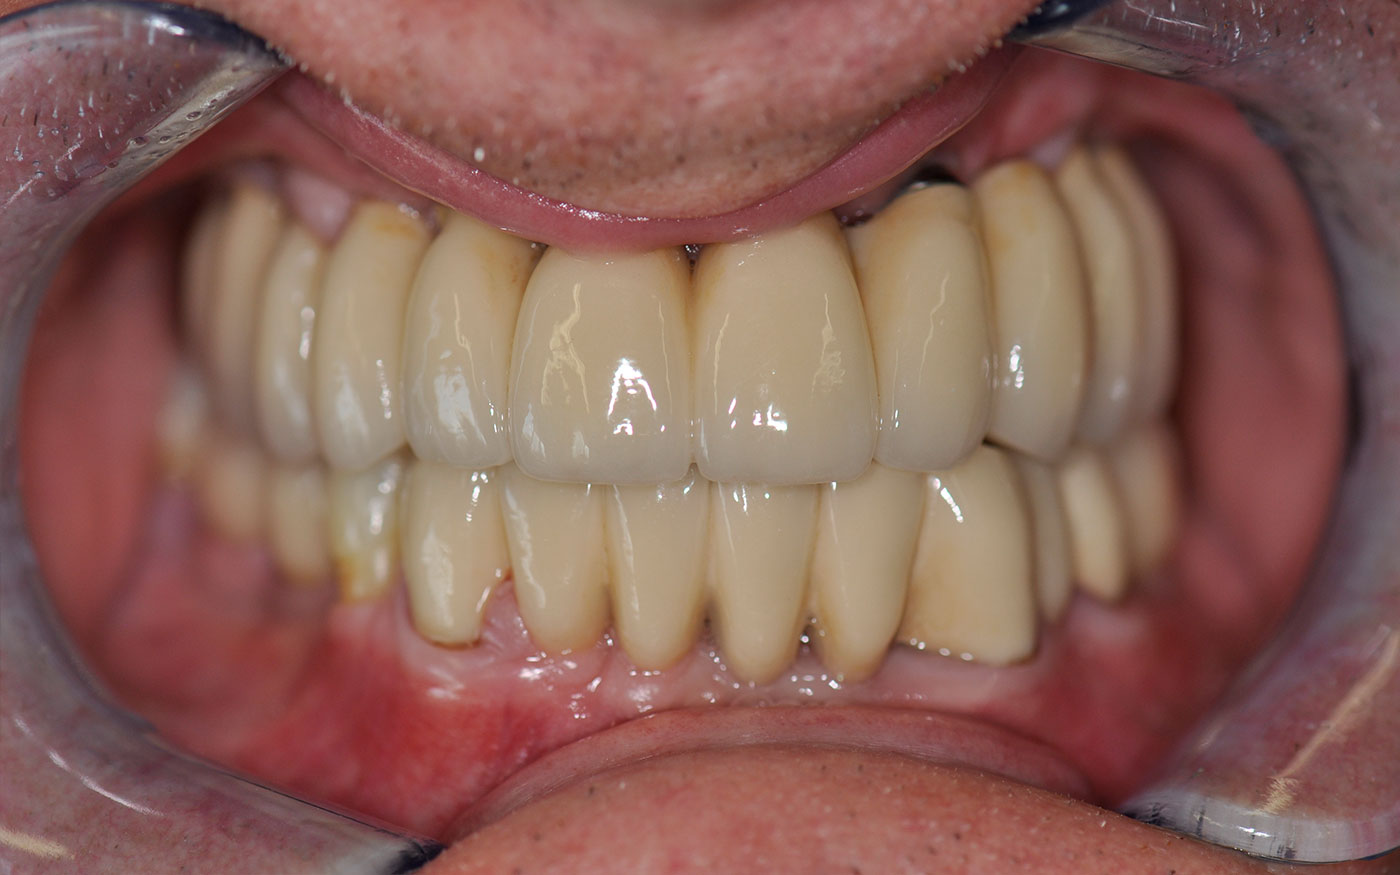 Loose dentures and failing teeth replaced with upper and lower dental Implants with fixed Implant bridgework